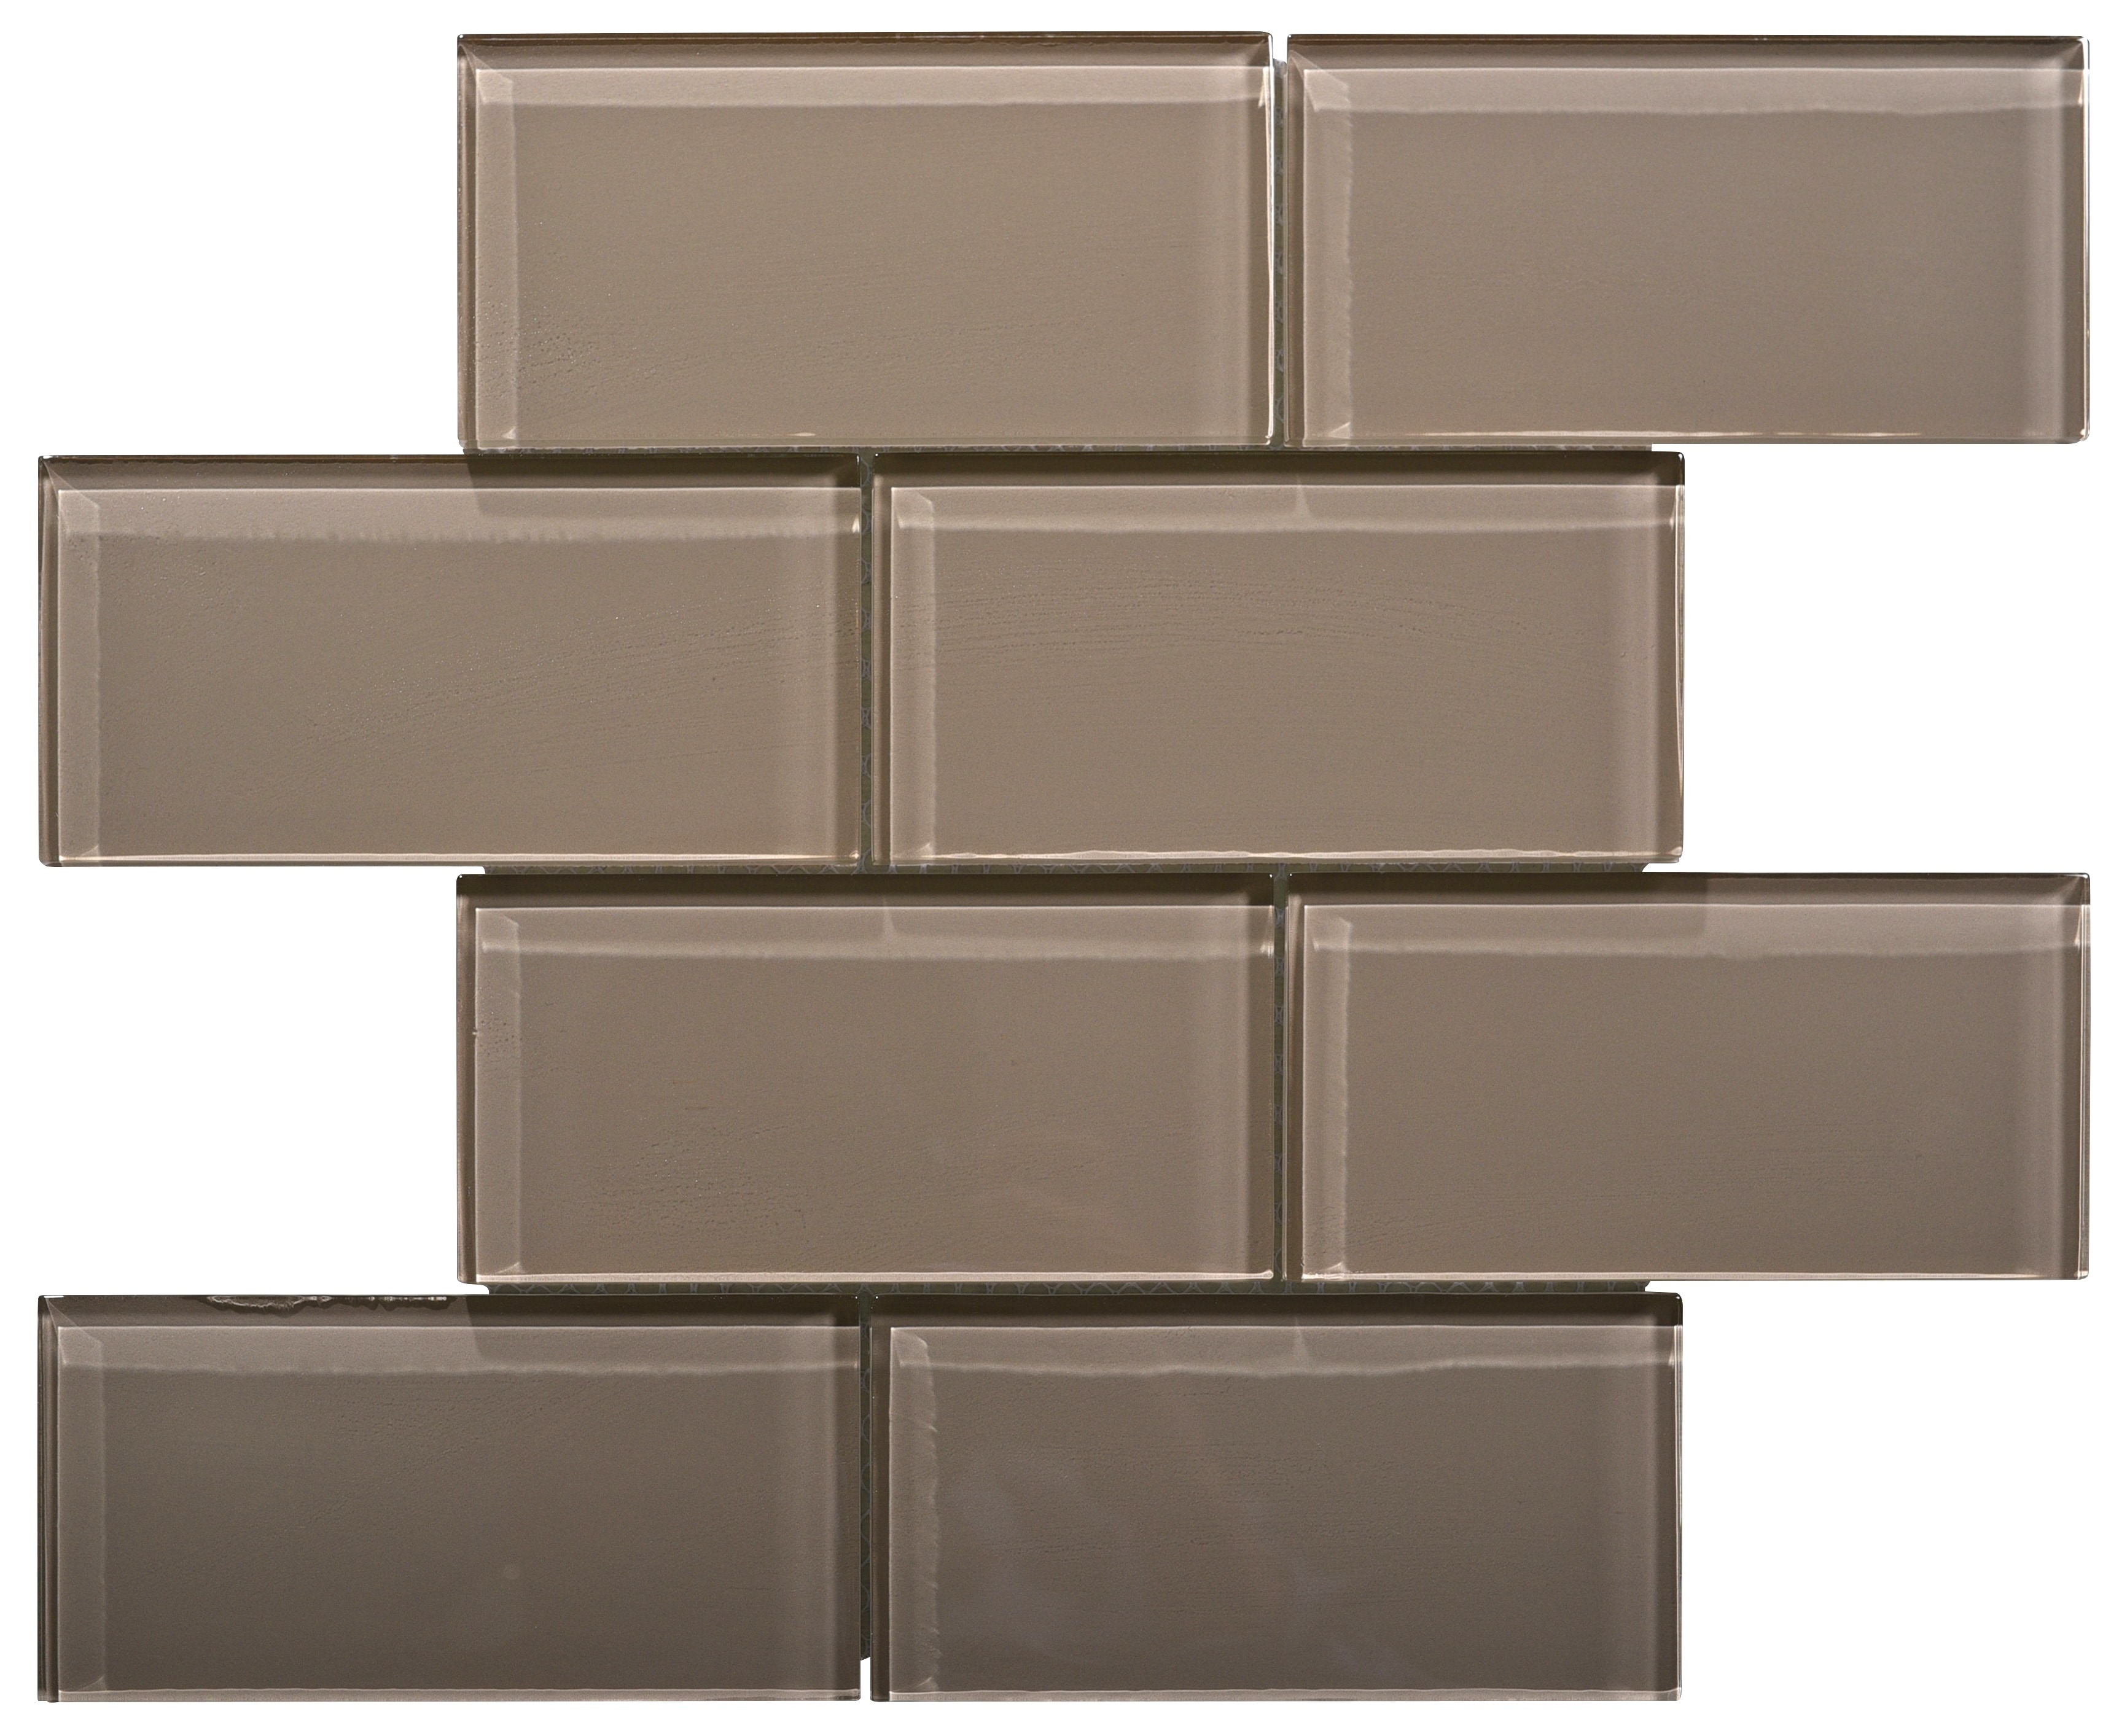 Glass Mosaic / 16 x 12 x 0.31 inches / Glossy Large Glass Subway Tile In Beige 0